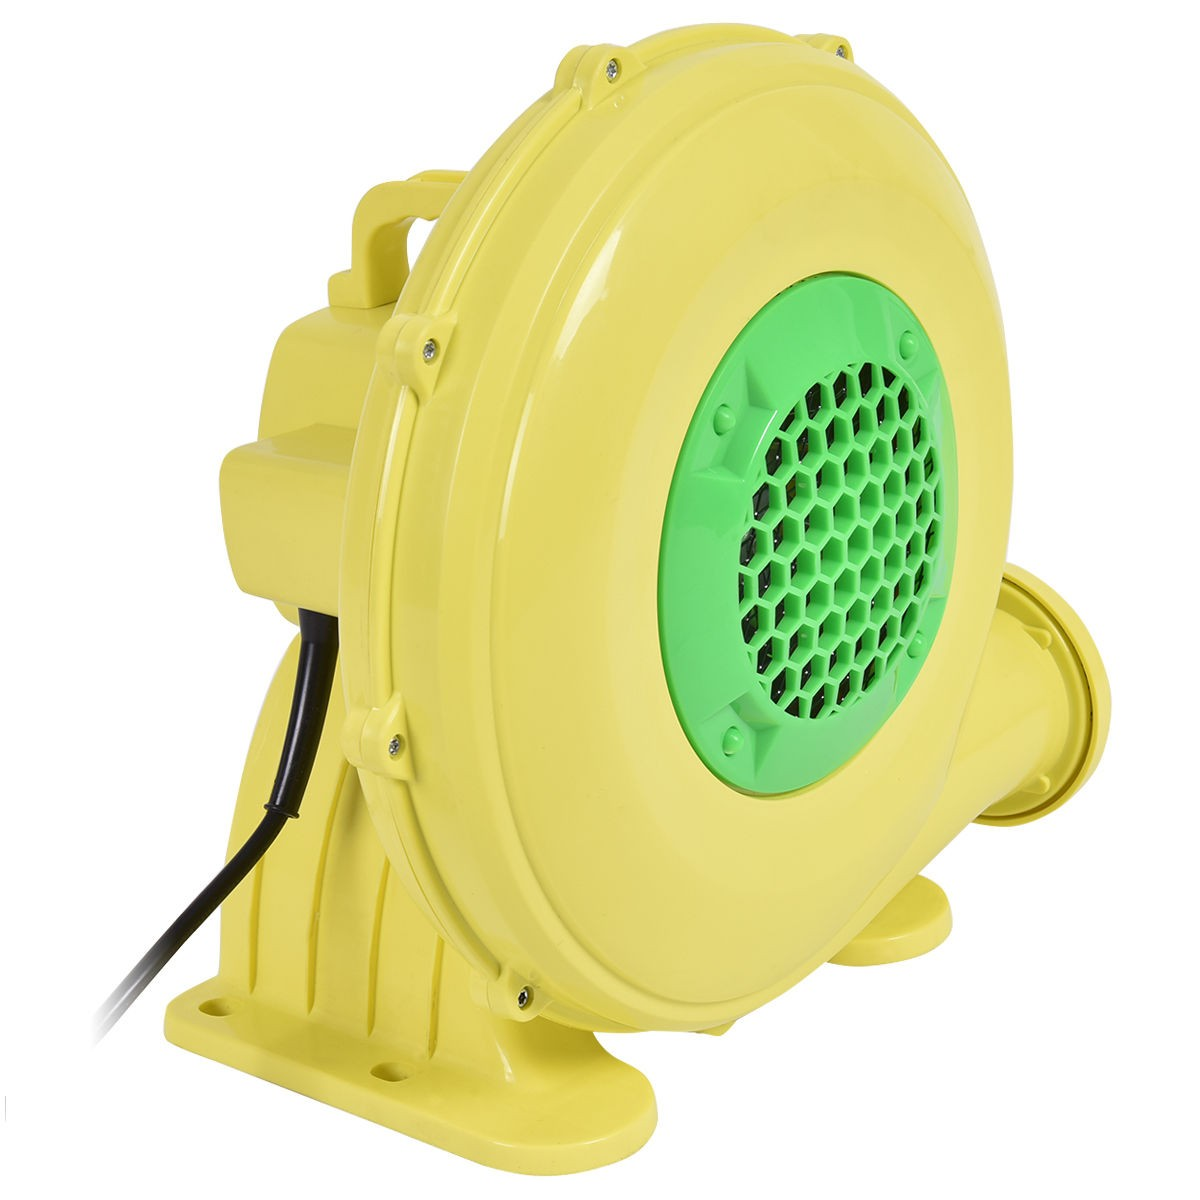 Inflatable Blower Fan : Air blower pump fan for inflatable bounce house bouncy